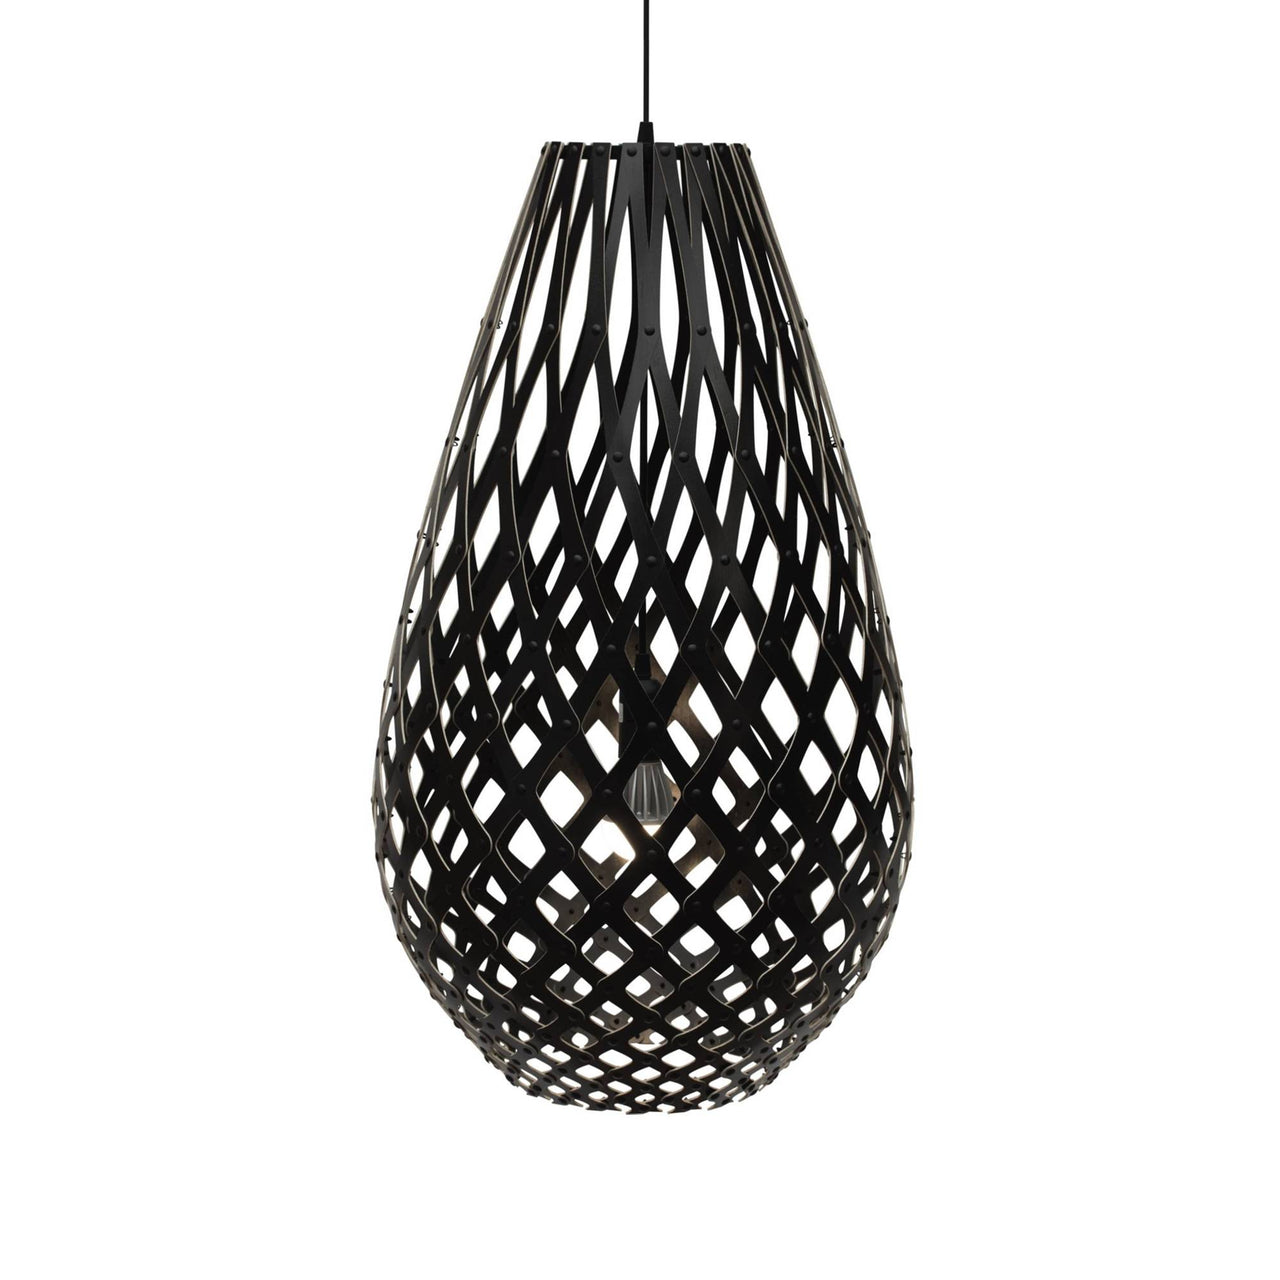 Koura Pendant Light: 1000 + Black Two Sides